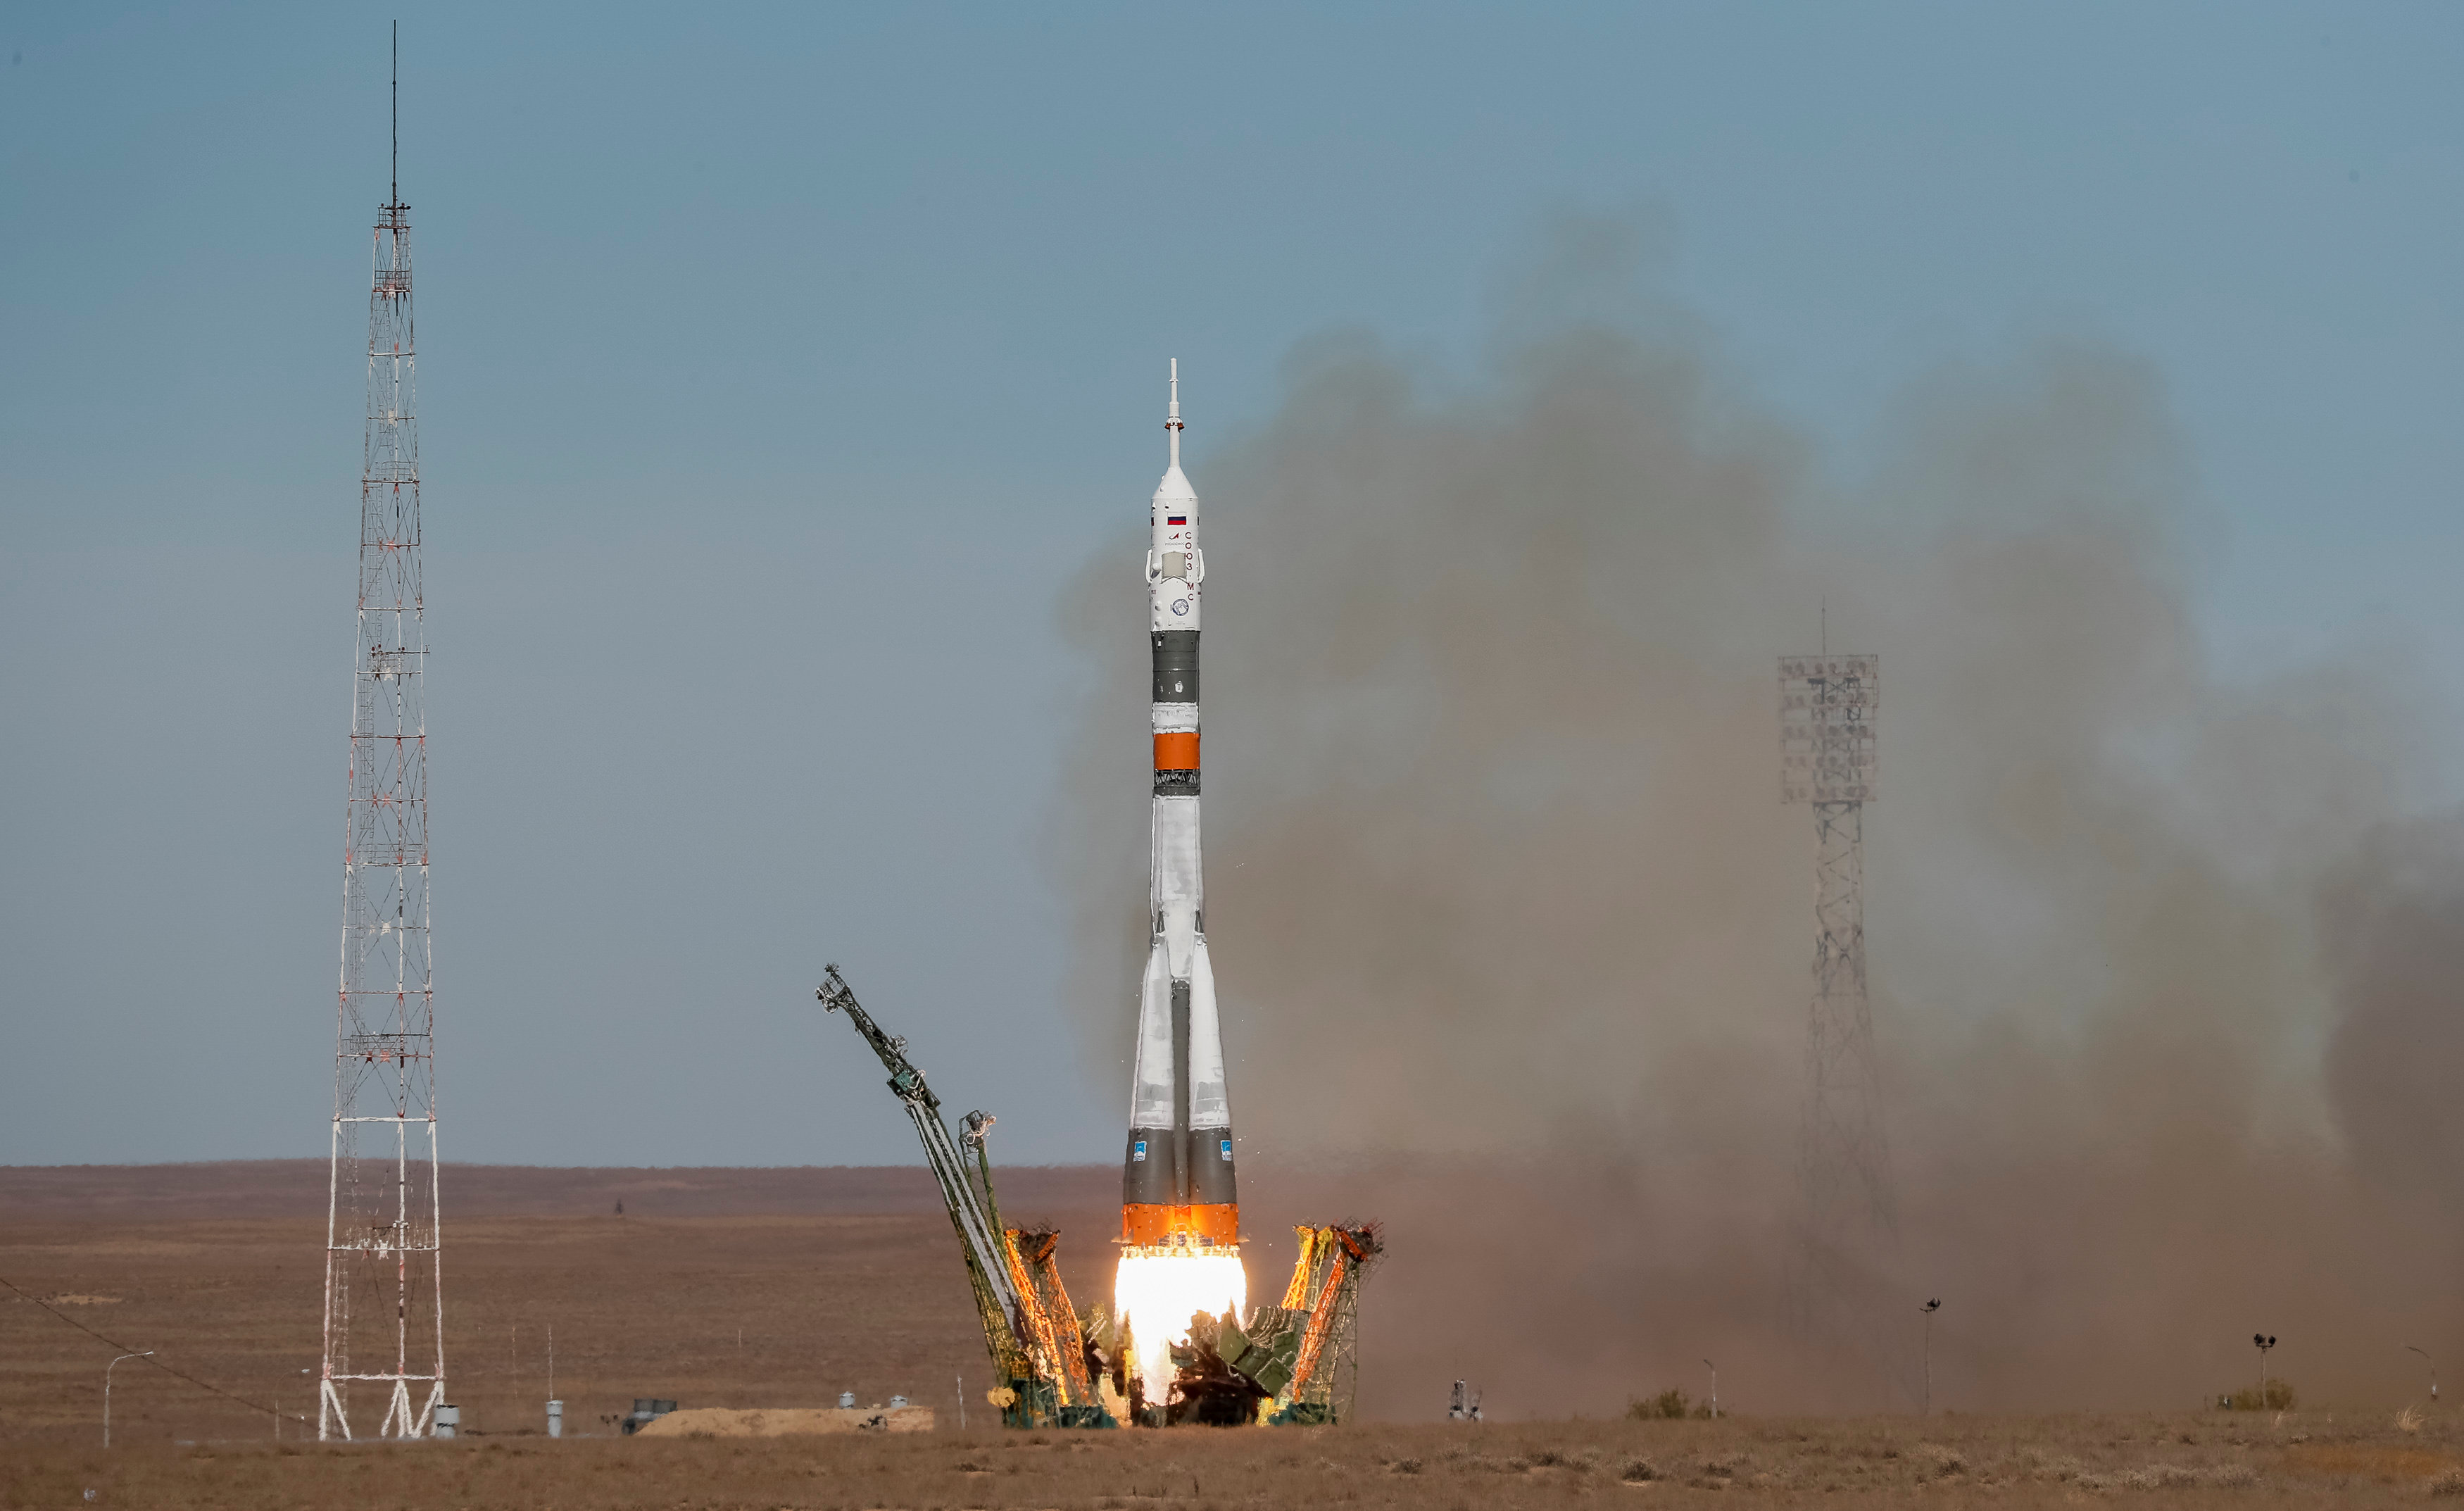 The Soyuz MS-10 spacecraft carrying the crew of astronaut Nick Hague of the U.S. and cosmonaut Alexey Ovchinin of Russia blasts off to the International Space Station (ISS) from the launchpad at the Baikonur Cosmodrome